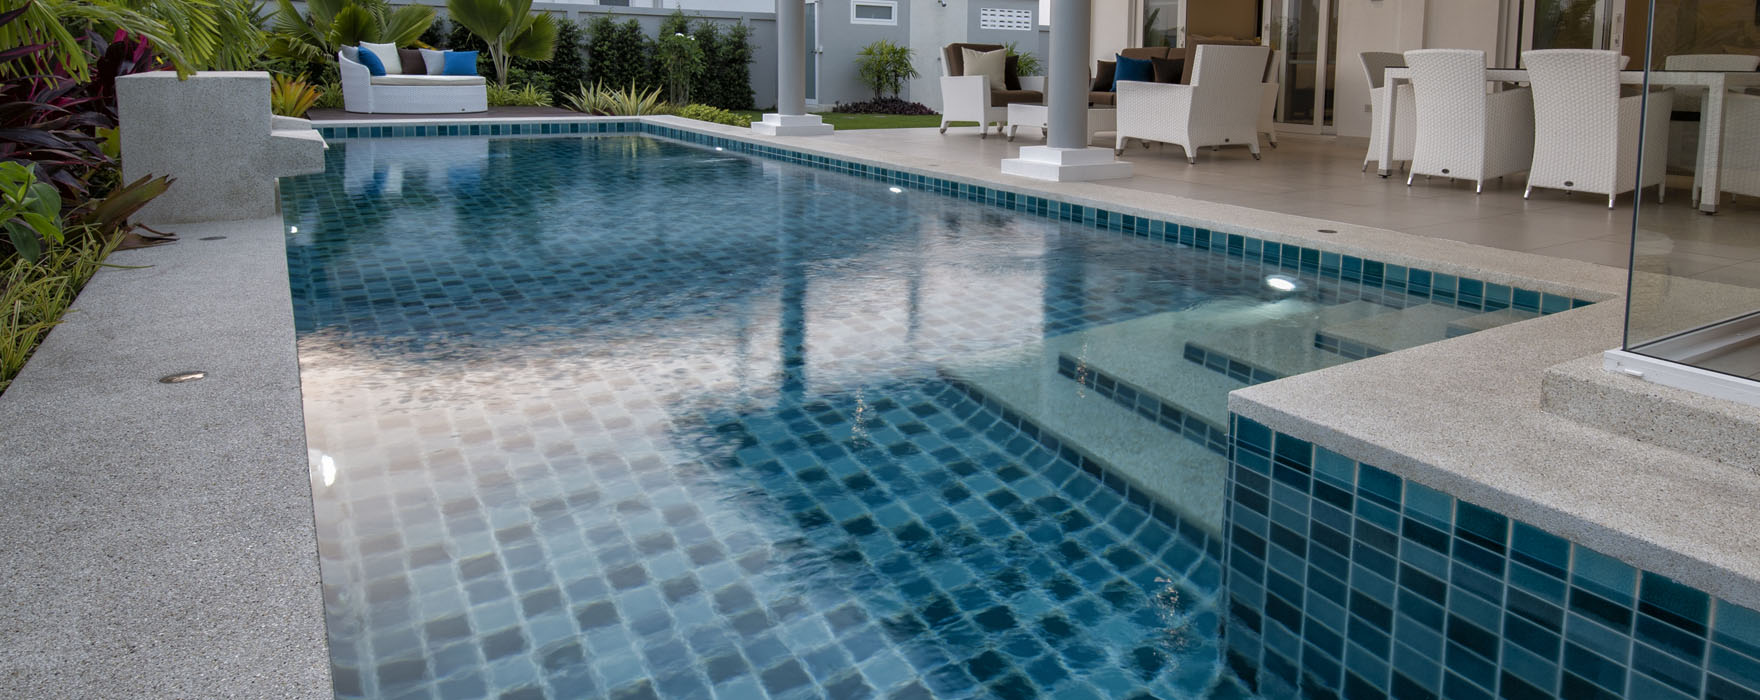 Swimming Pools in Hua Hin | Pools R Uz